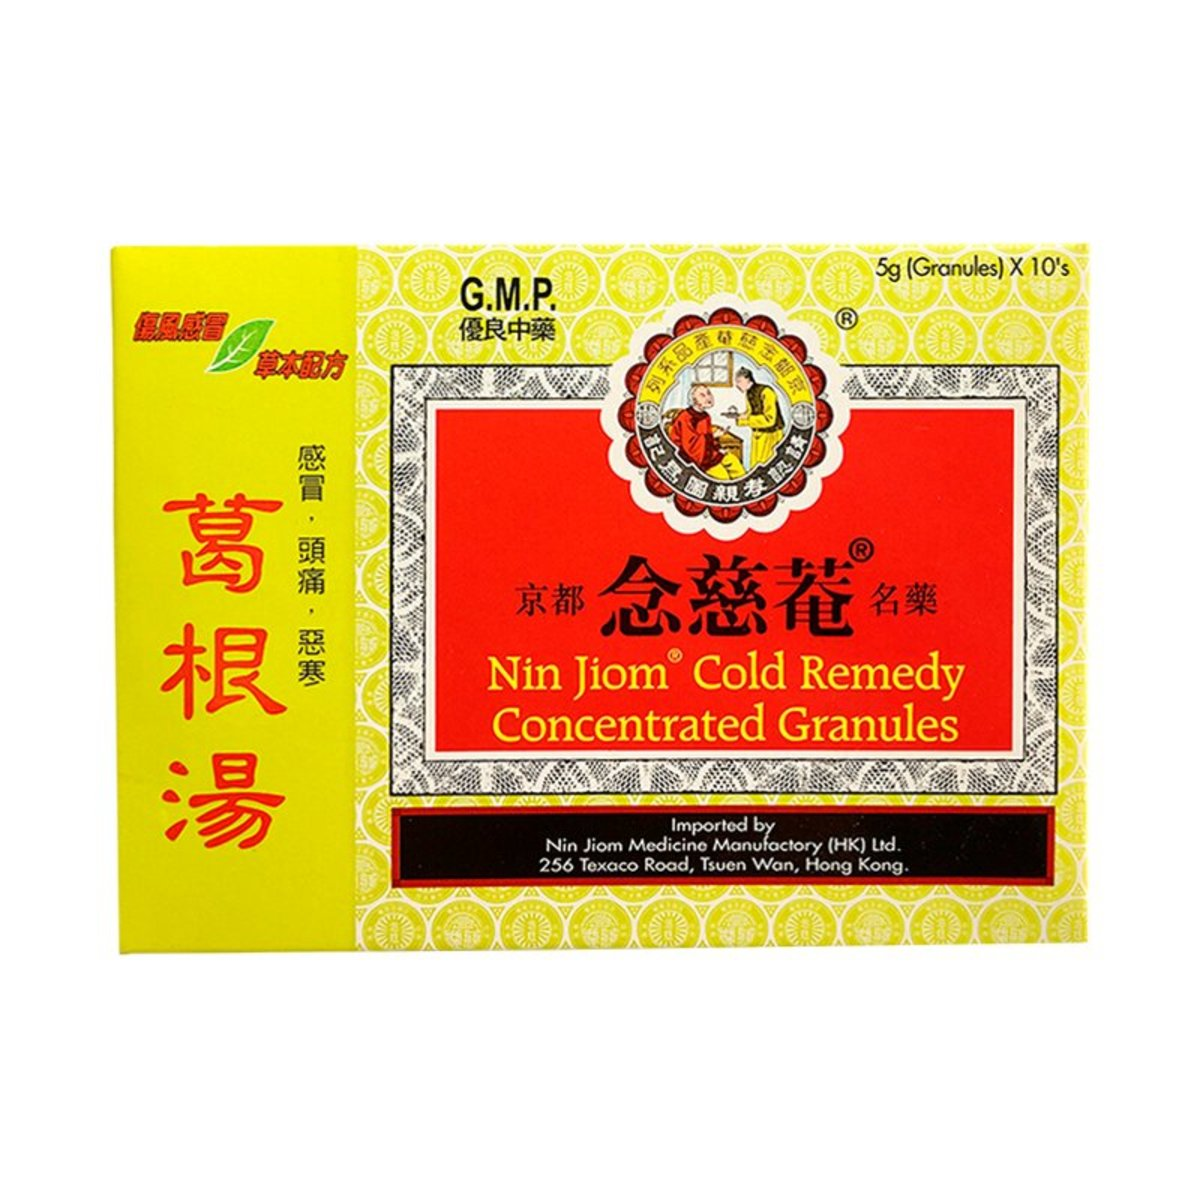 Cold Remedy 5gx10 pack